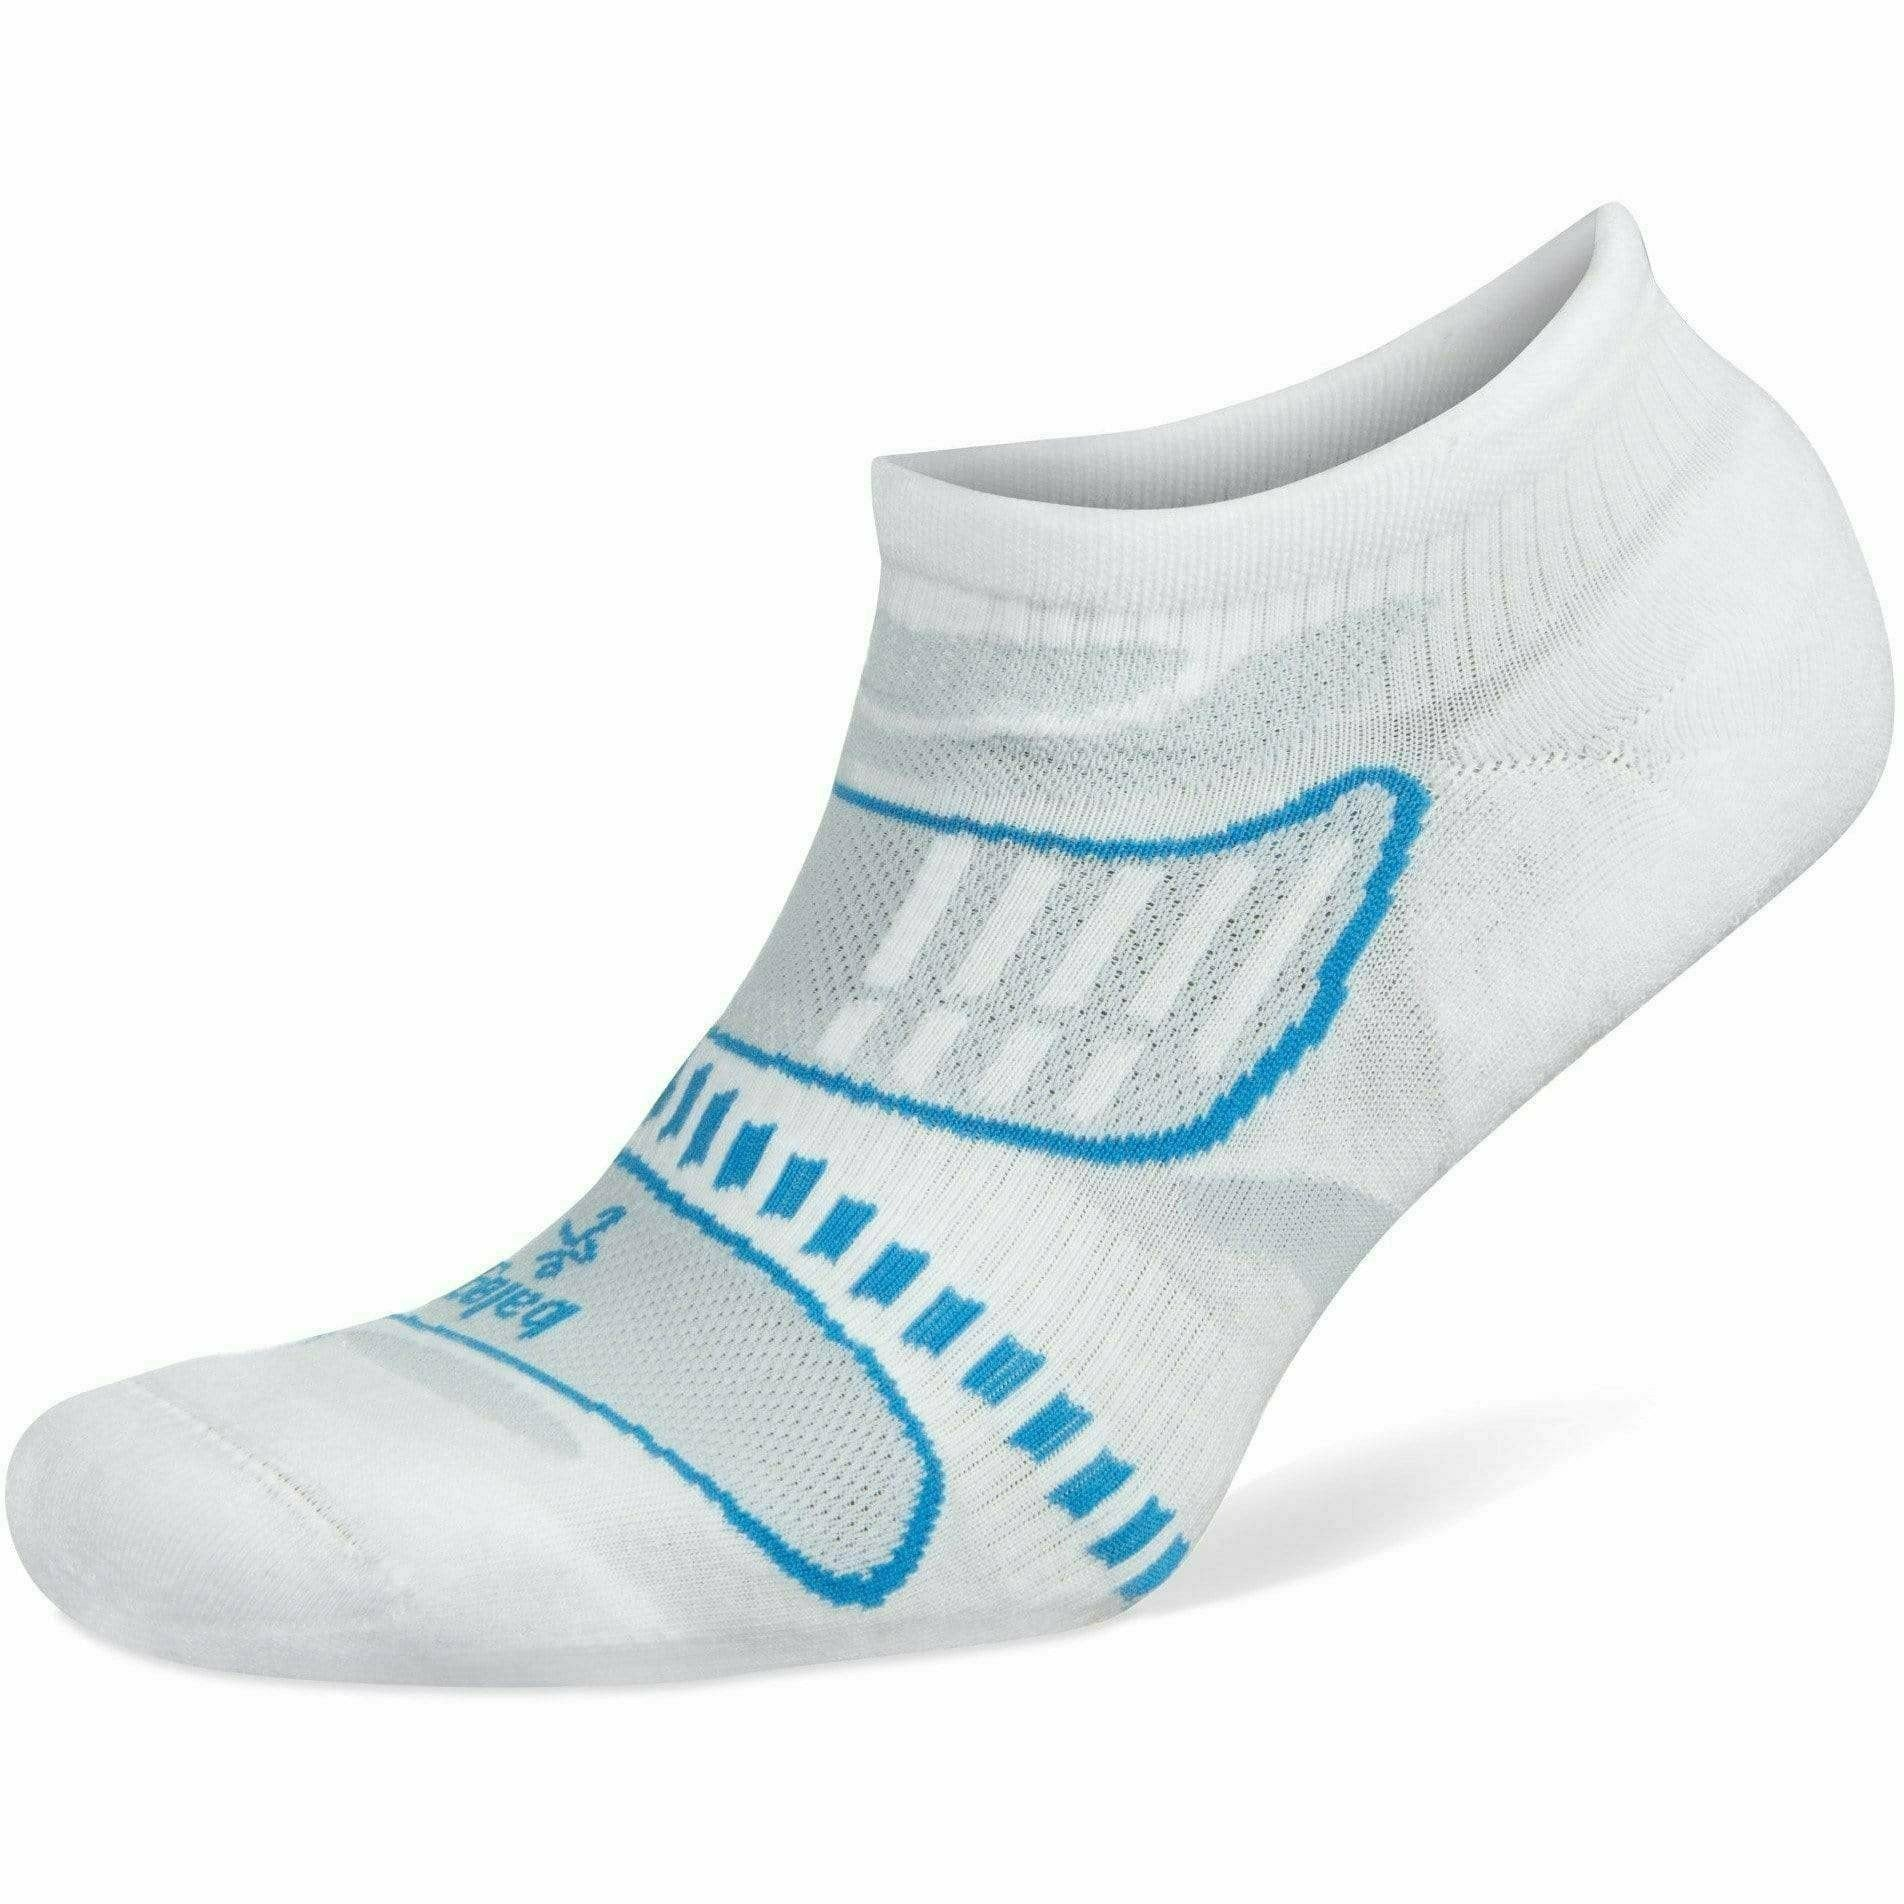 Balega Ultra Light No Show Socks Small / White/French Blue / Current